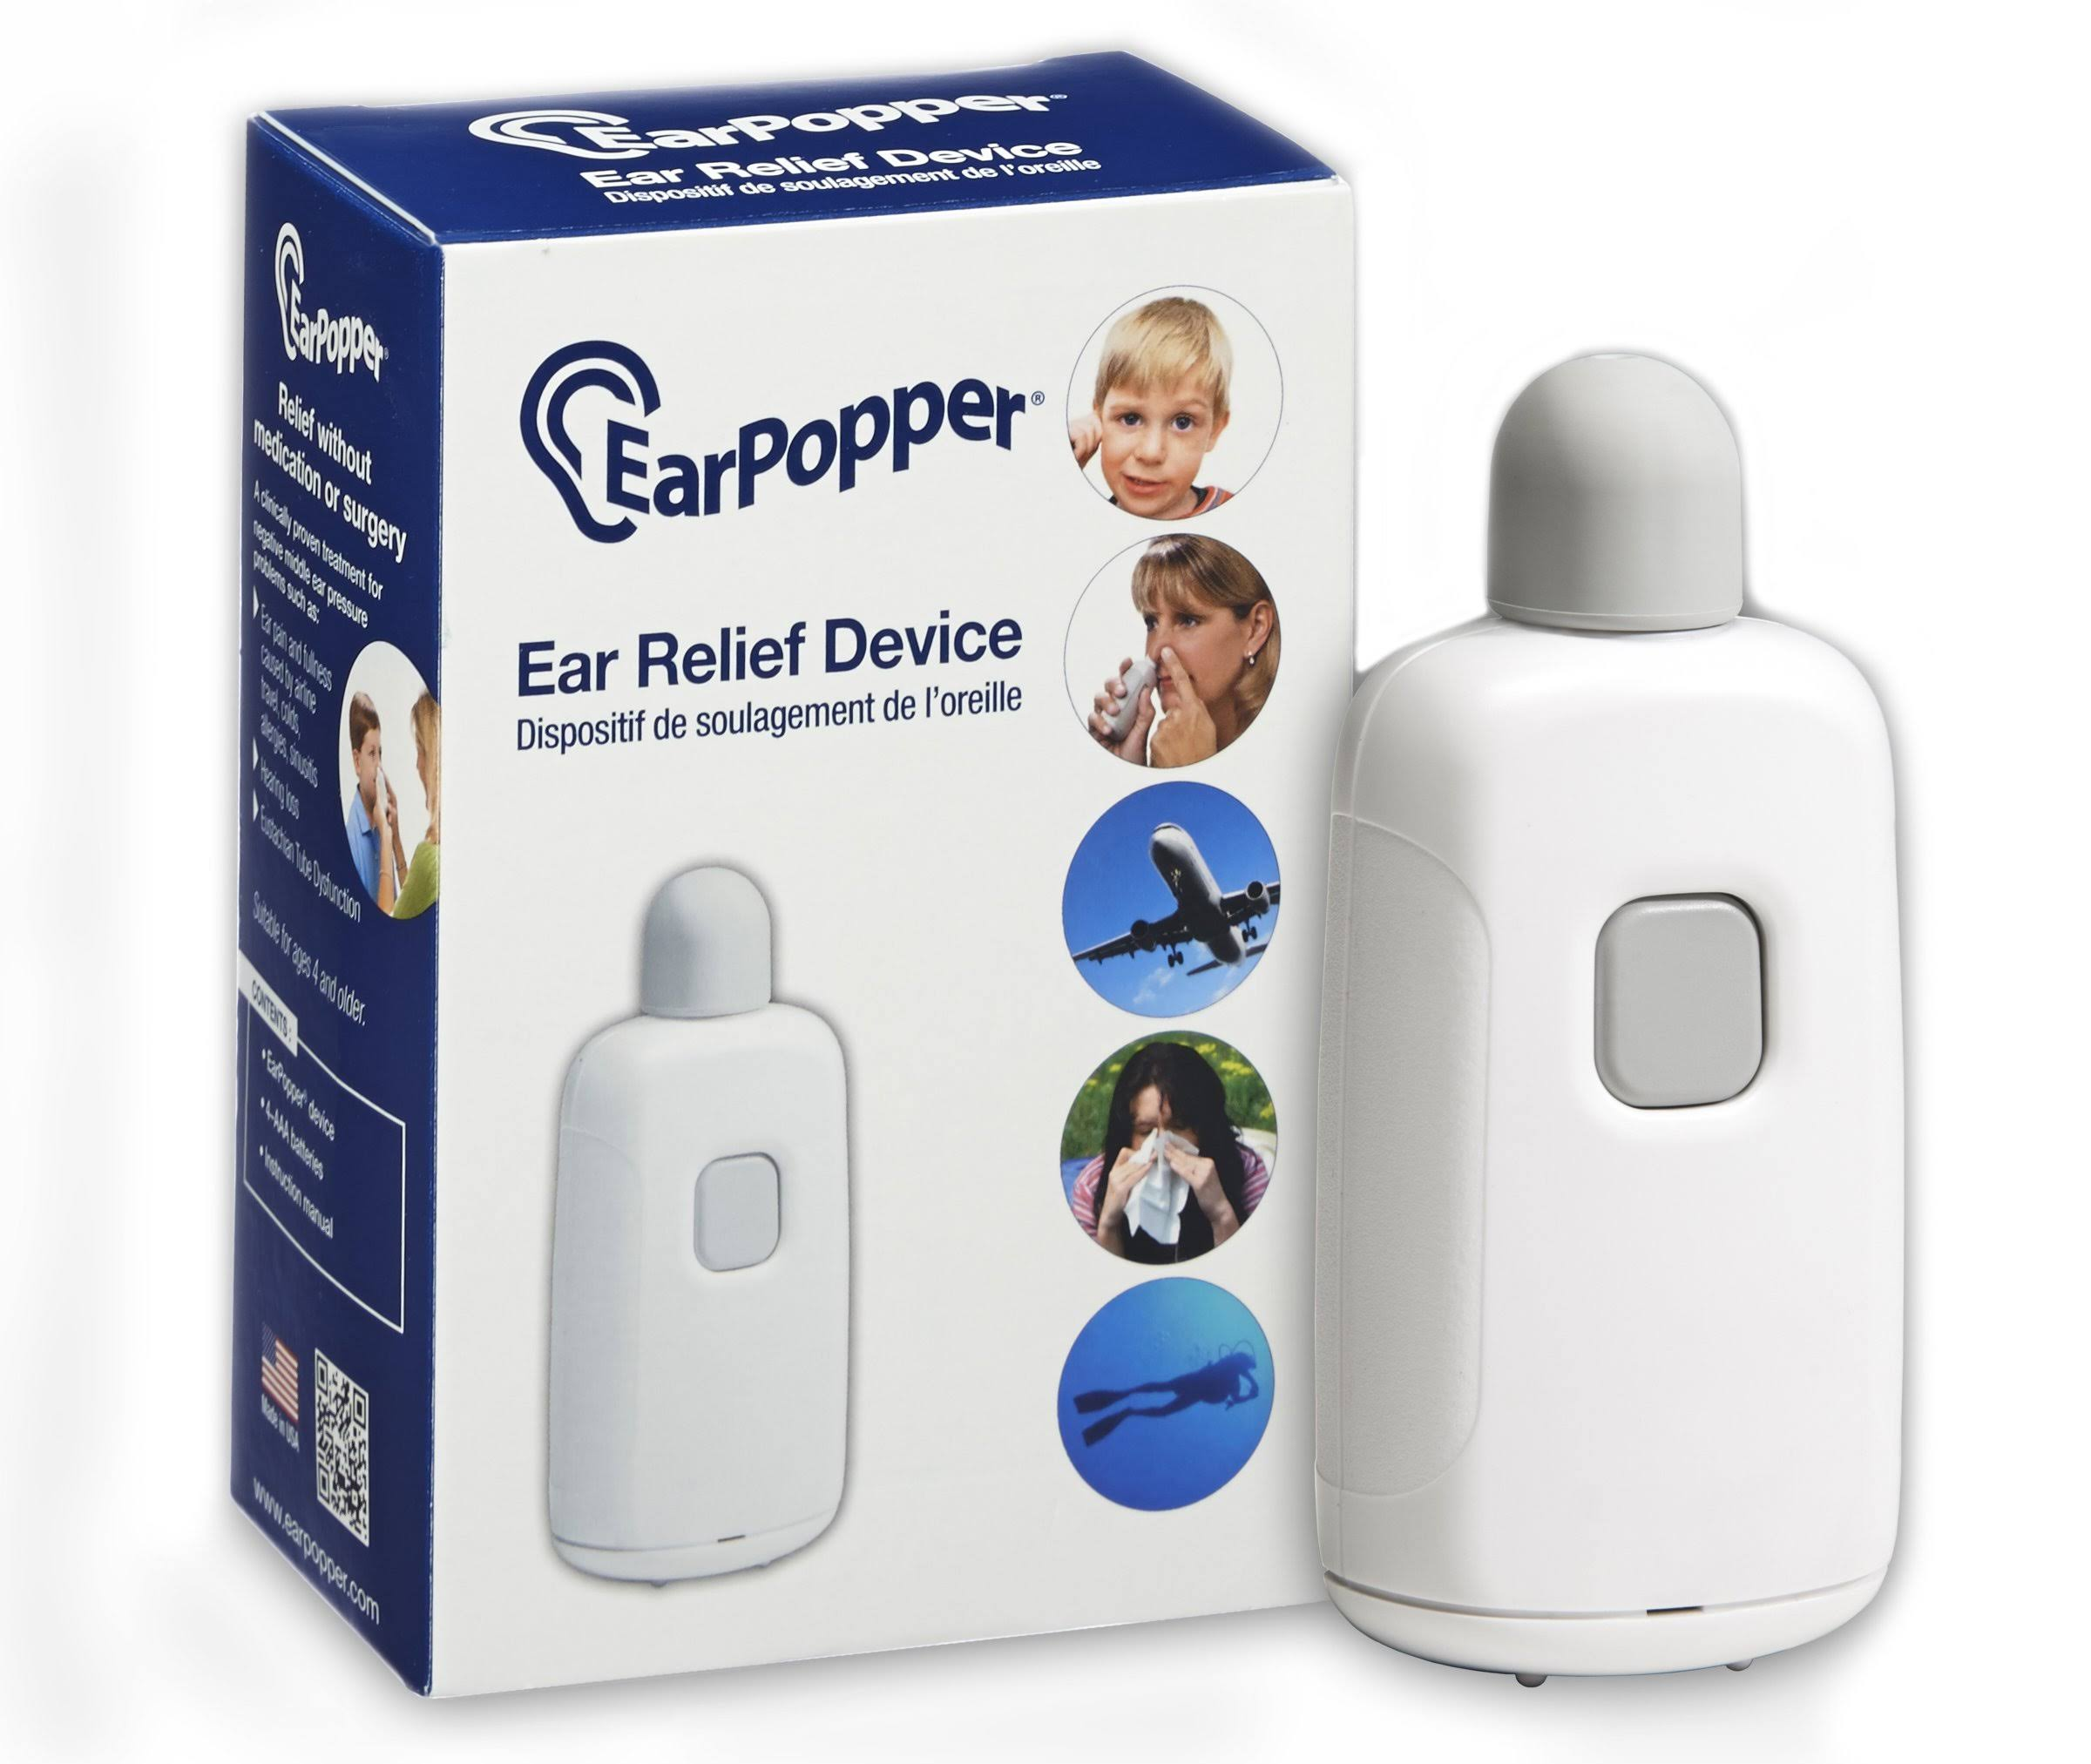 Ear Popper Home Version Ear Pressure Relief Device